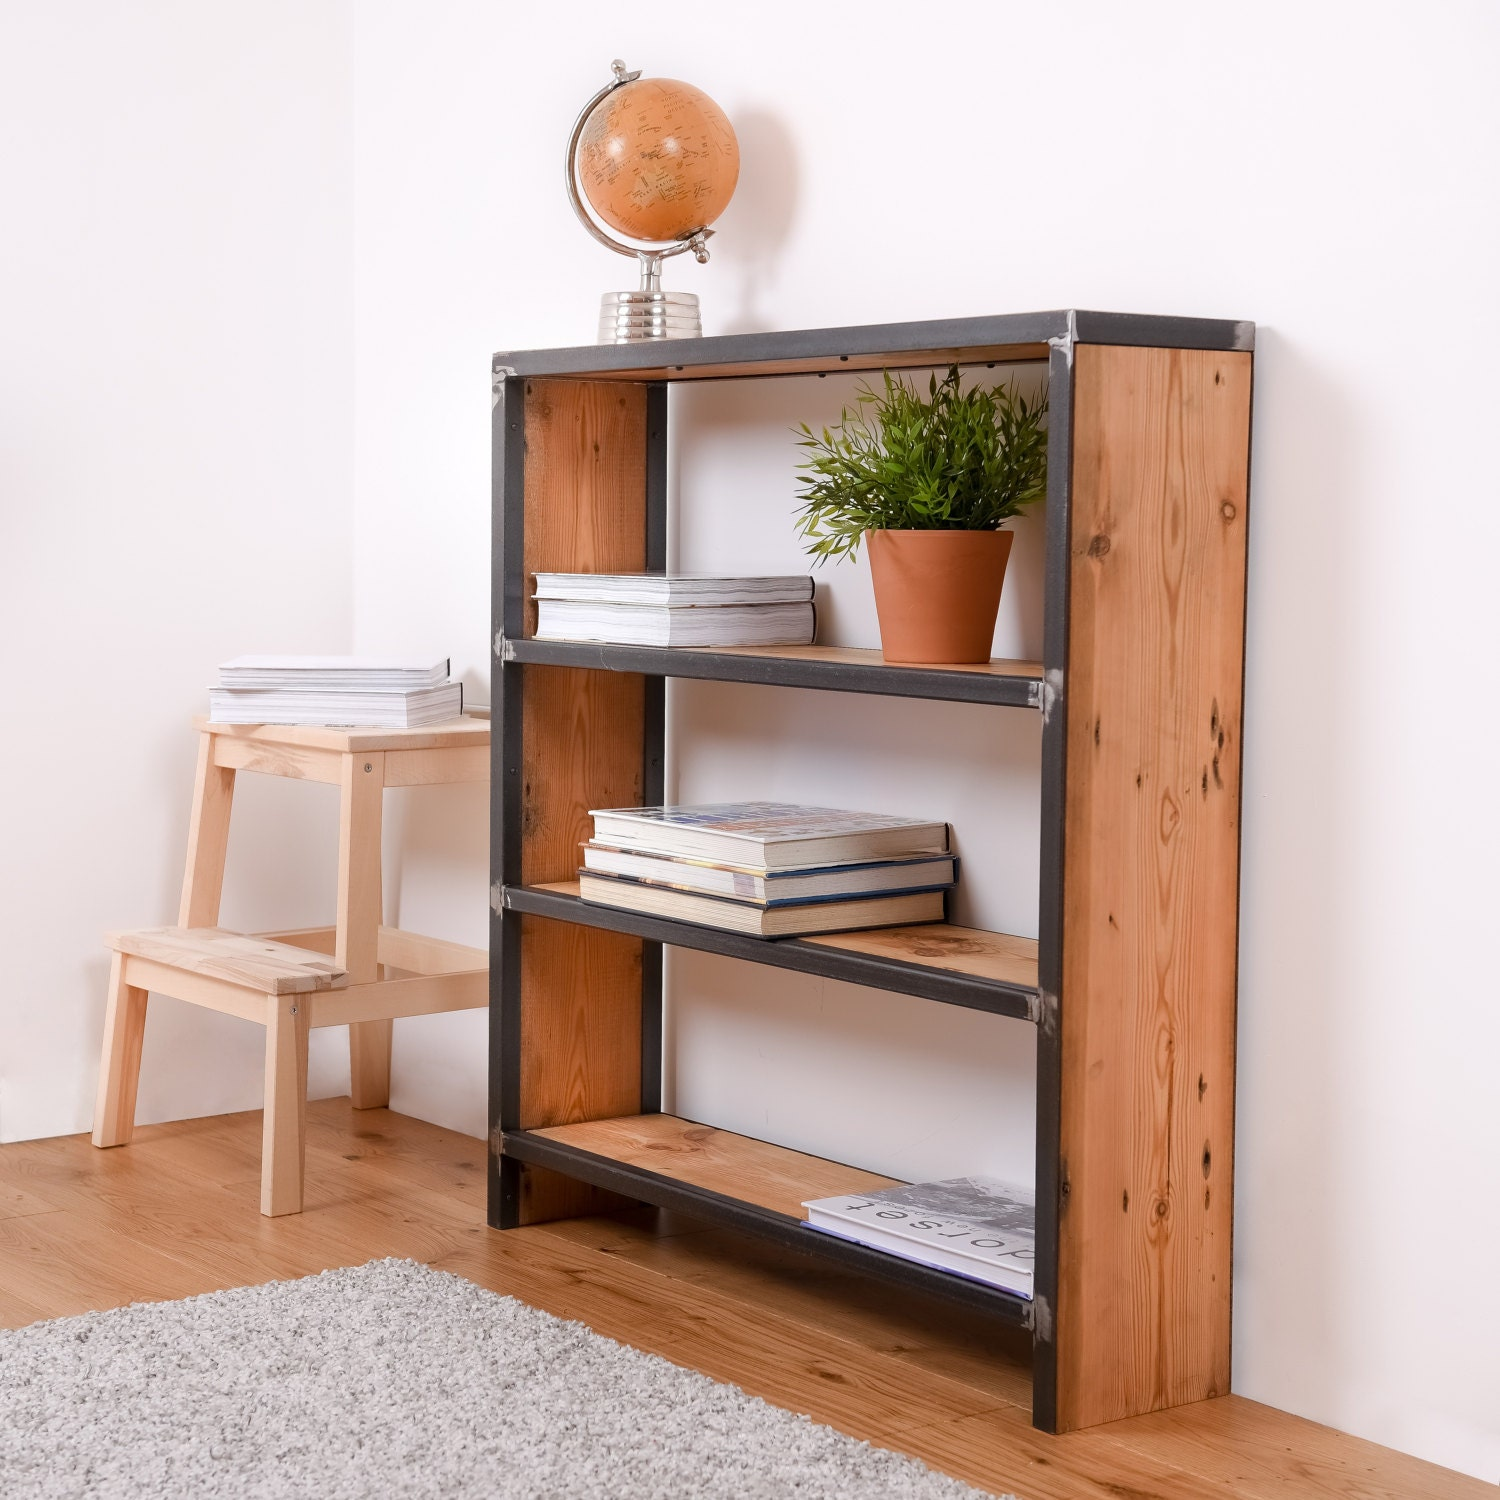 Reclaimed Wood Bookcase Reclaimed Shelving Unit Rustic Bookcase Reclaimed Bookcase Industrial Bookcase Steel And Wood Bookcase Book